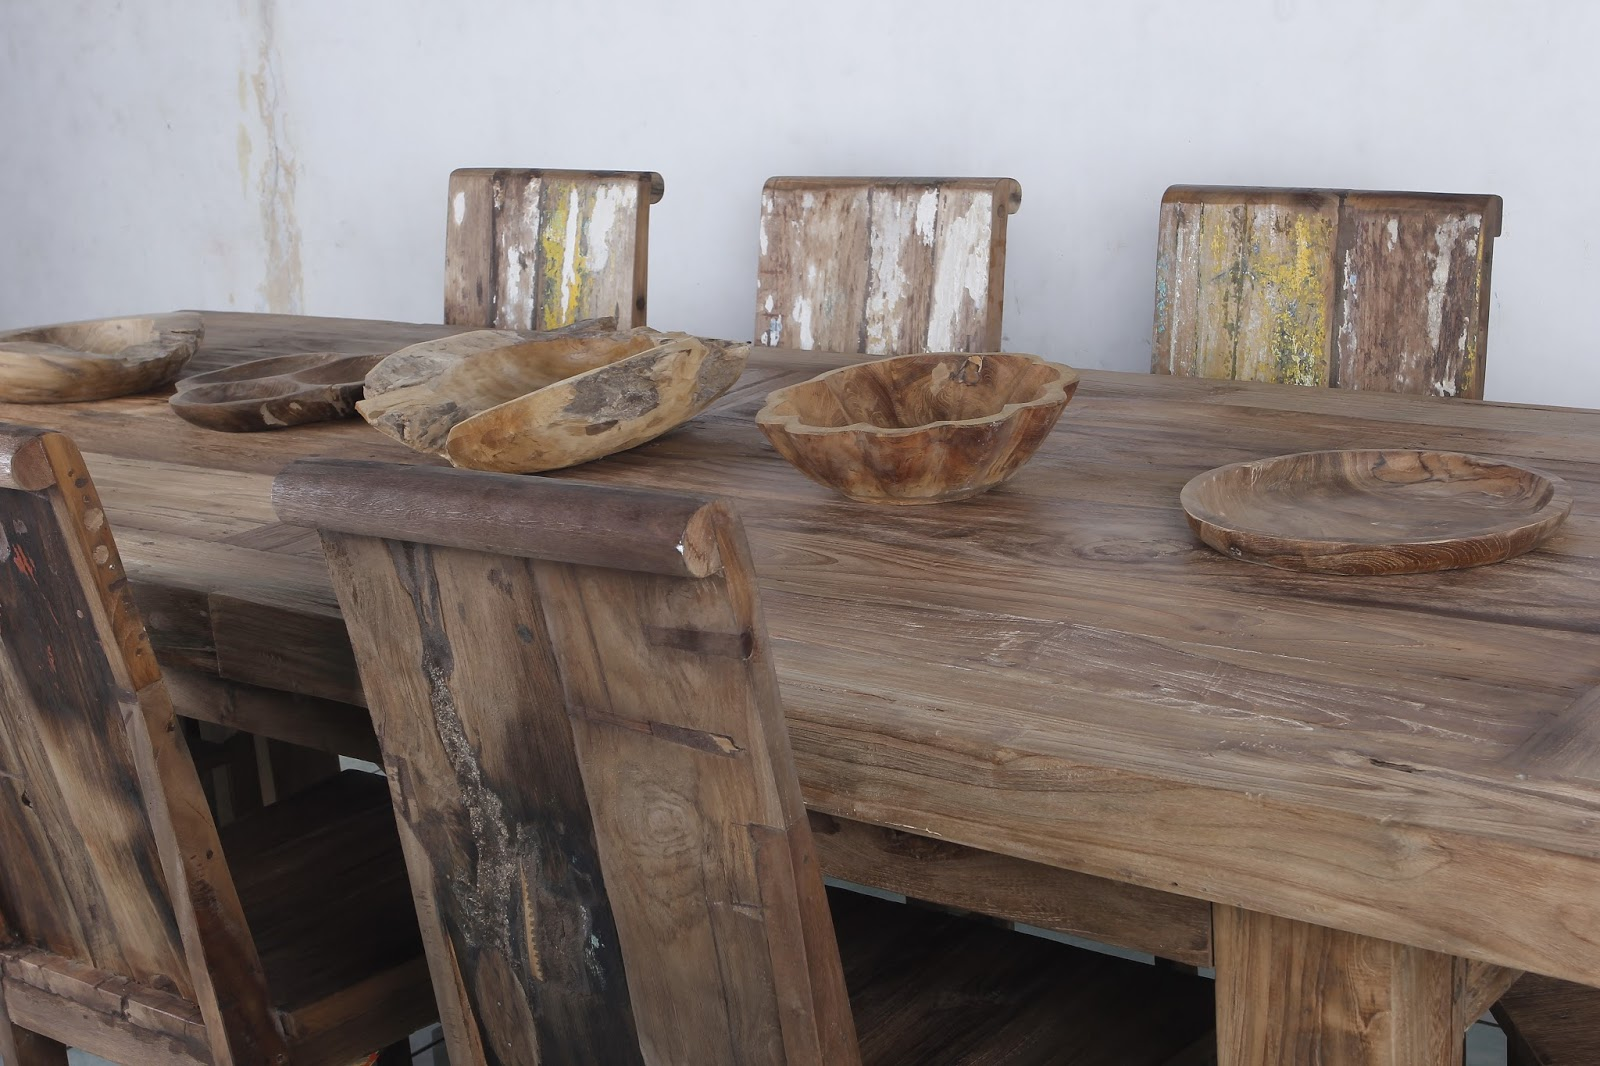 These kind of furniture is built and made by indonesian furniture artisans and selected raw material from old javanese wooden house holland building